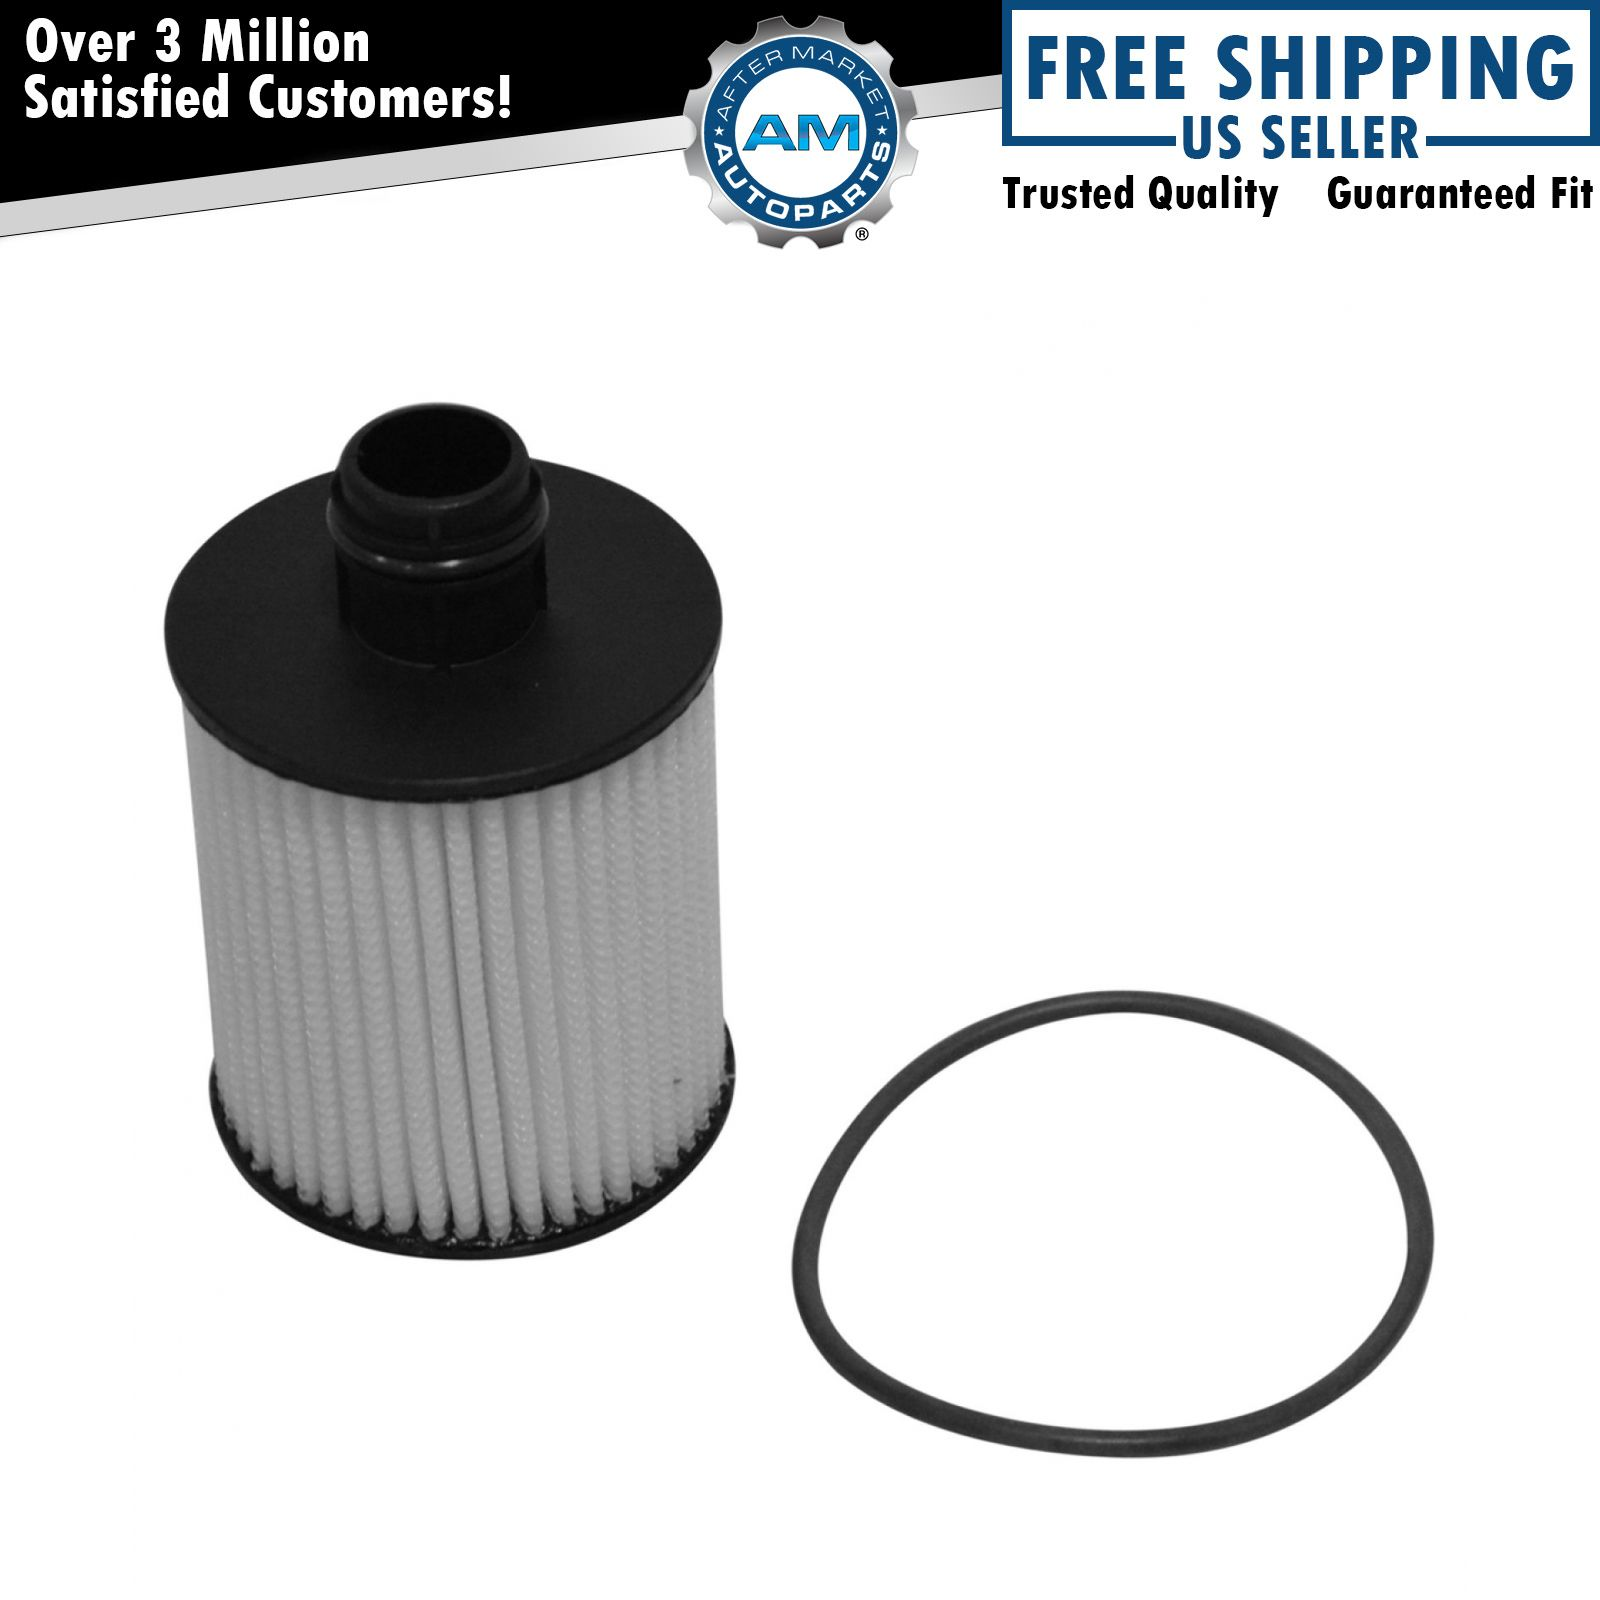 Ac Delco 19301505 Engine Oil Filter Cartridge For Chevy Cruze 20 Fuel Diesel New